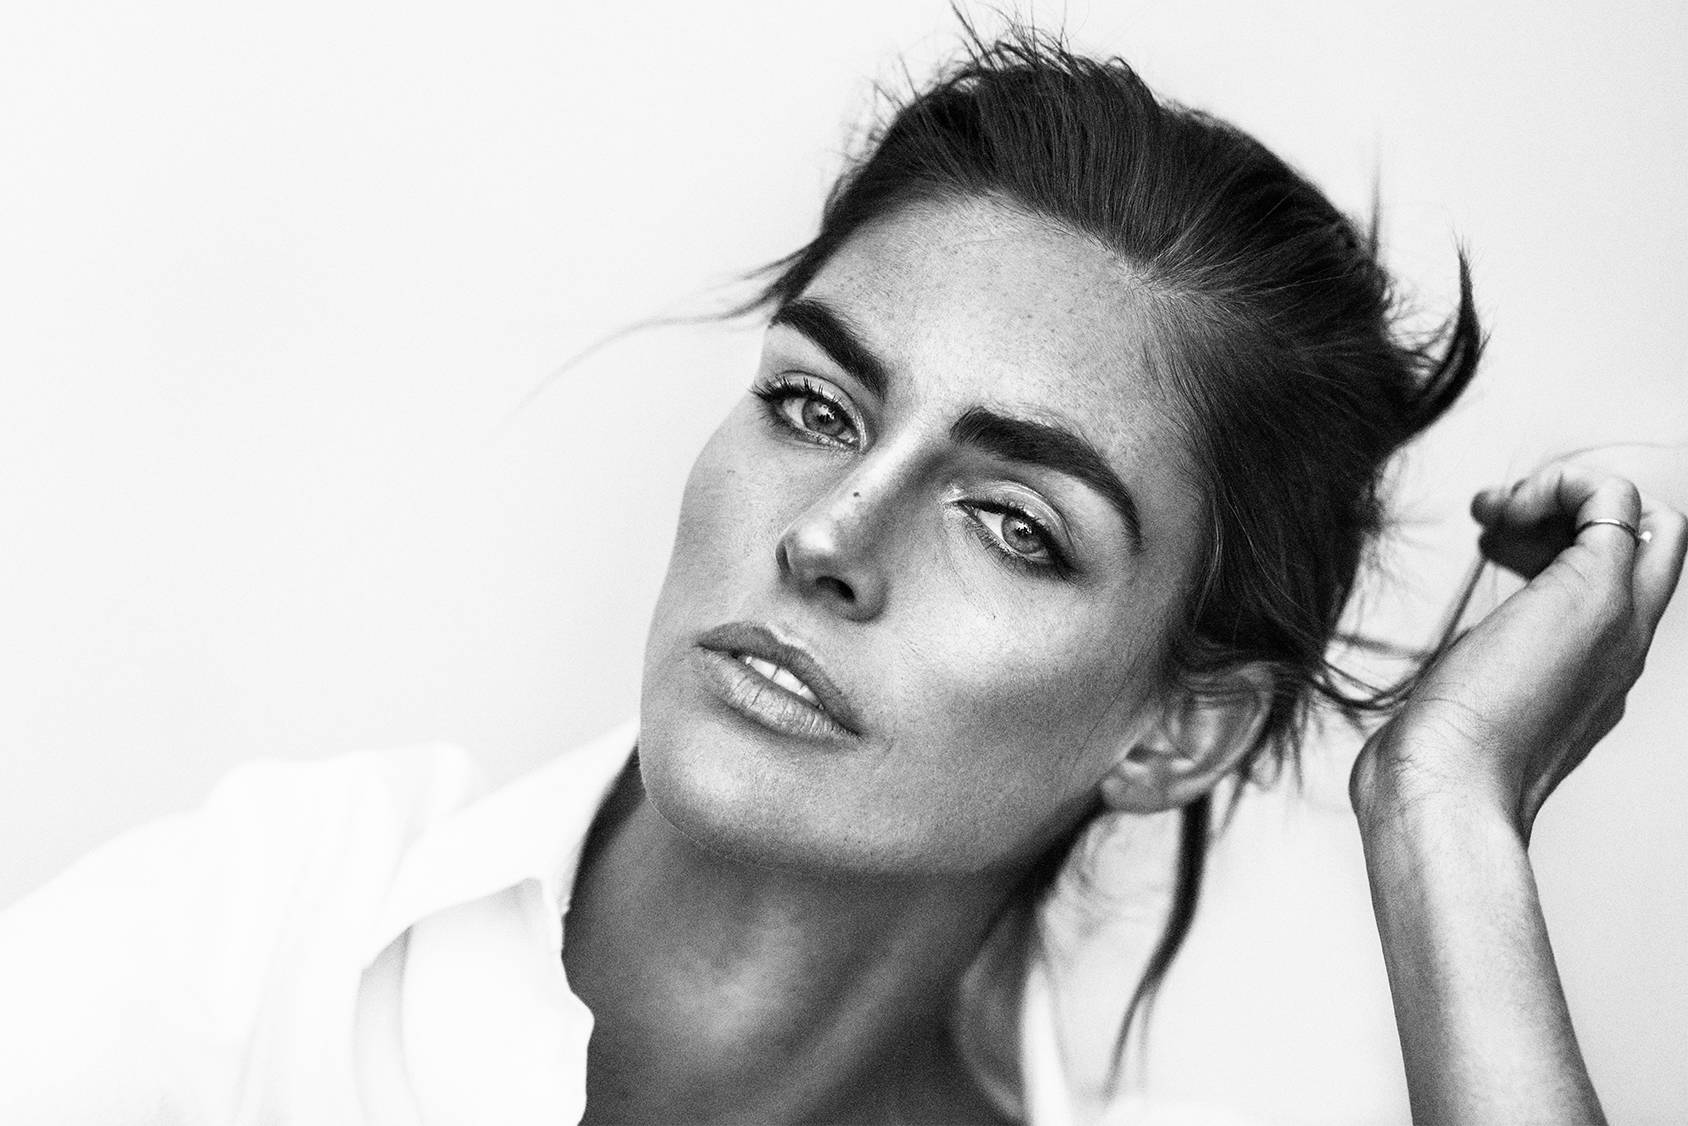 TOP MODEL SECRETS: HILARY RHODA